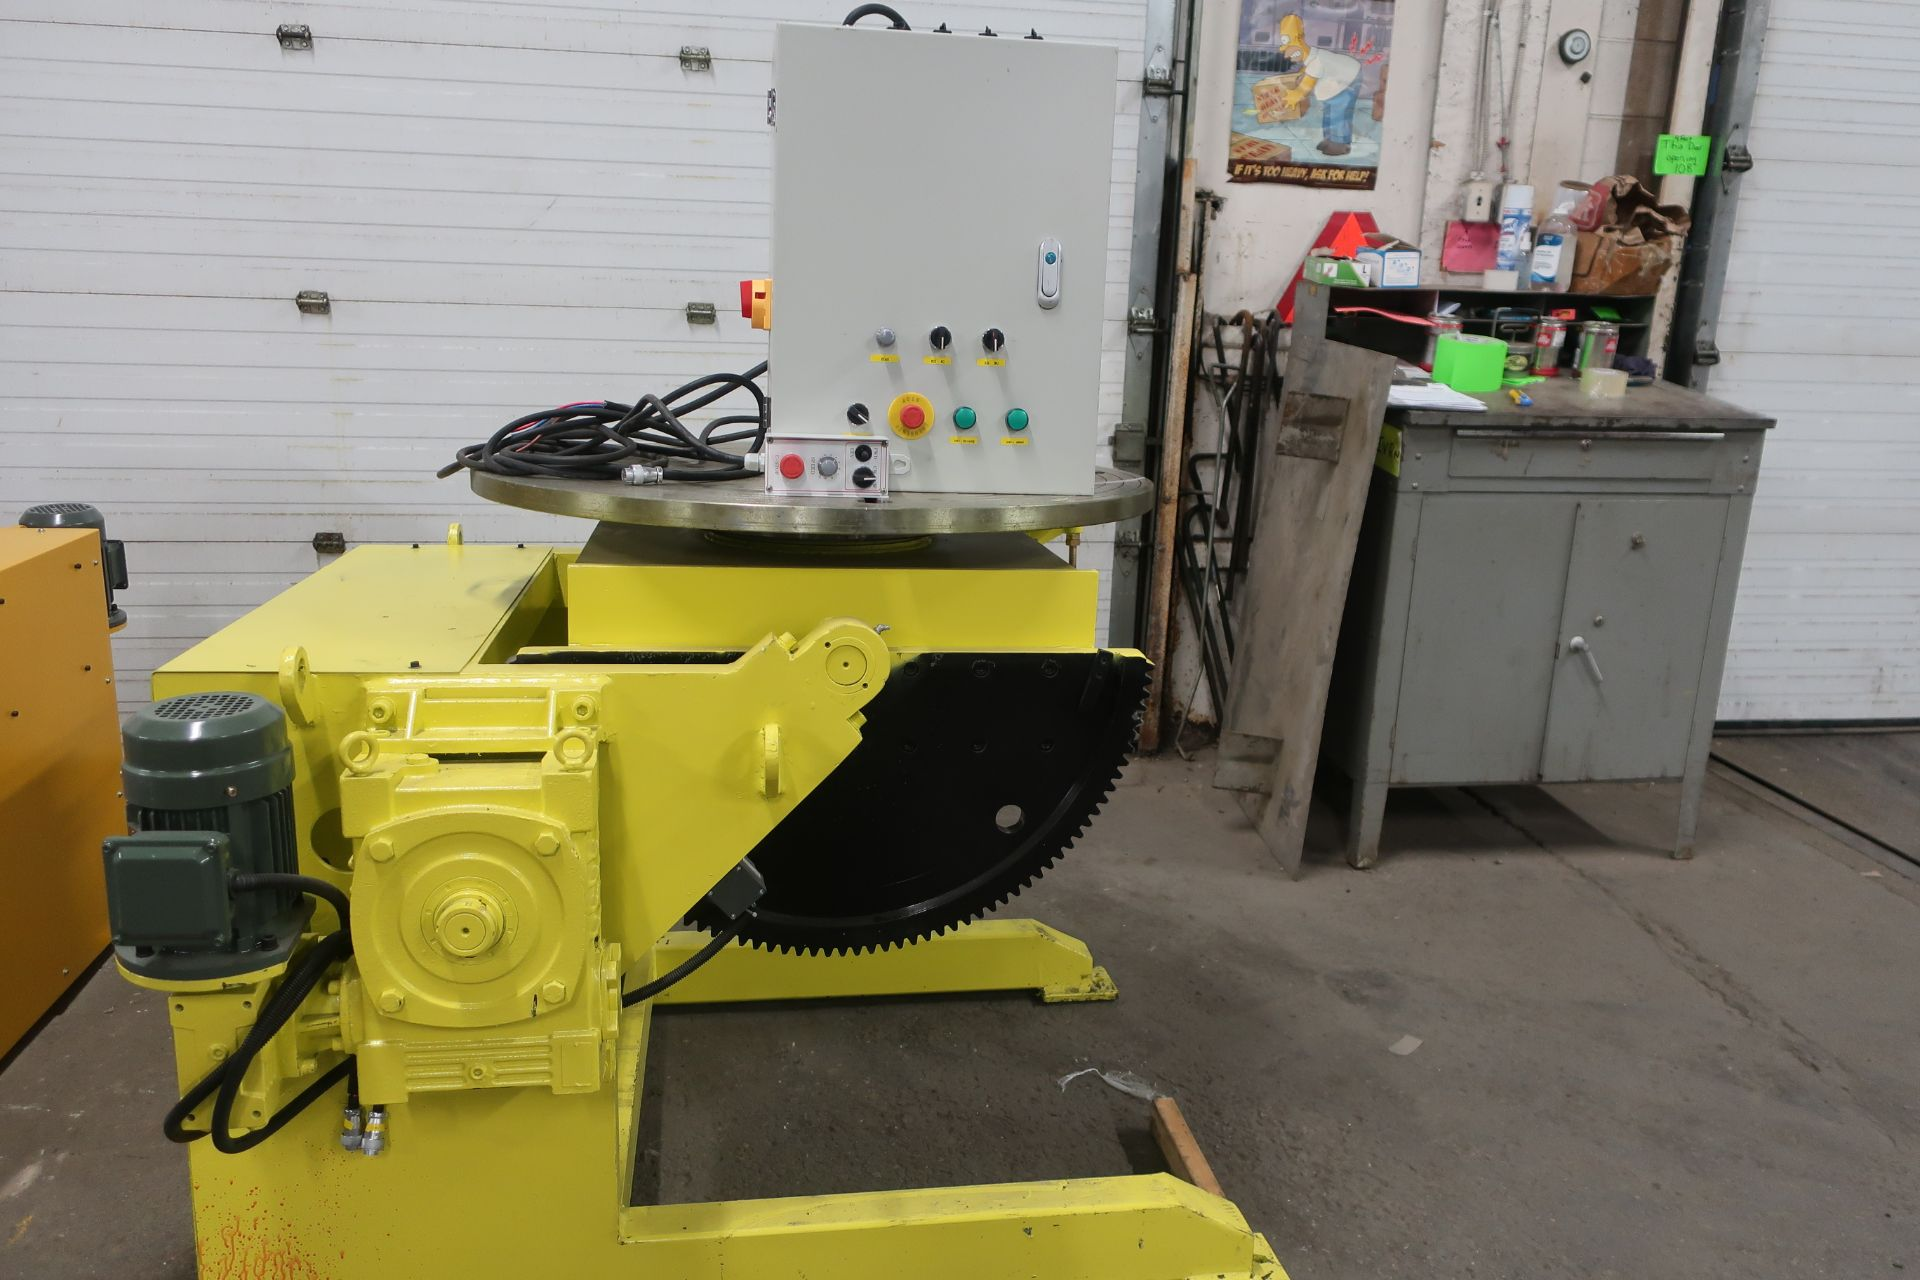 Verner model VD-2500 WELDING POSITIONER 2500lbs capacity - tilt and rotate with variable speed drive - Image 3 of 3